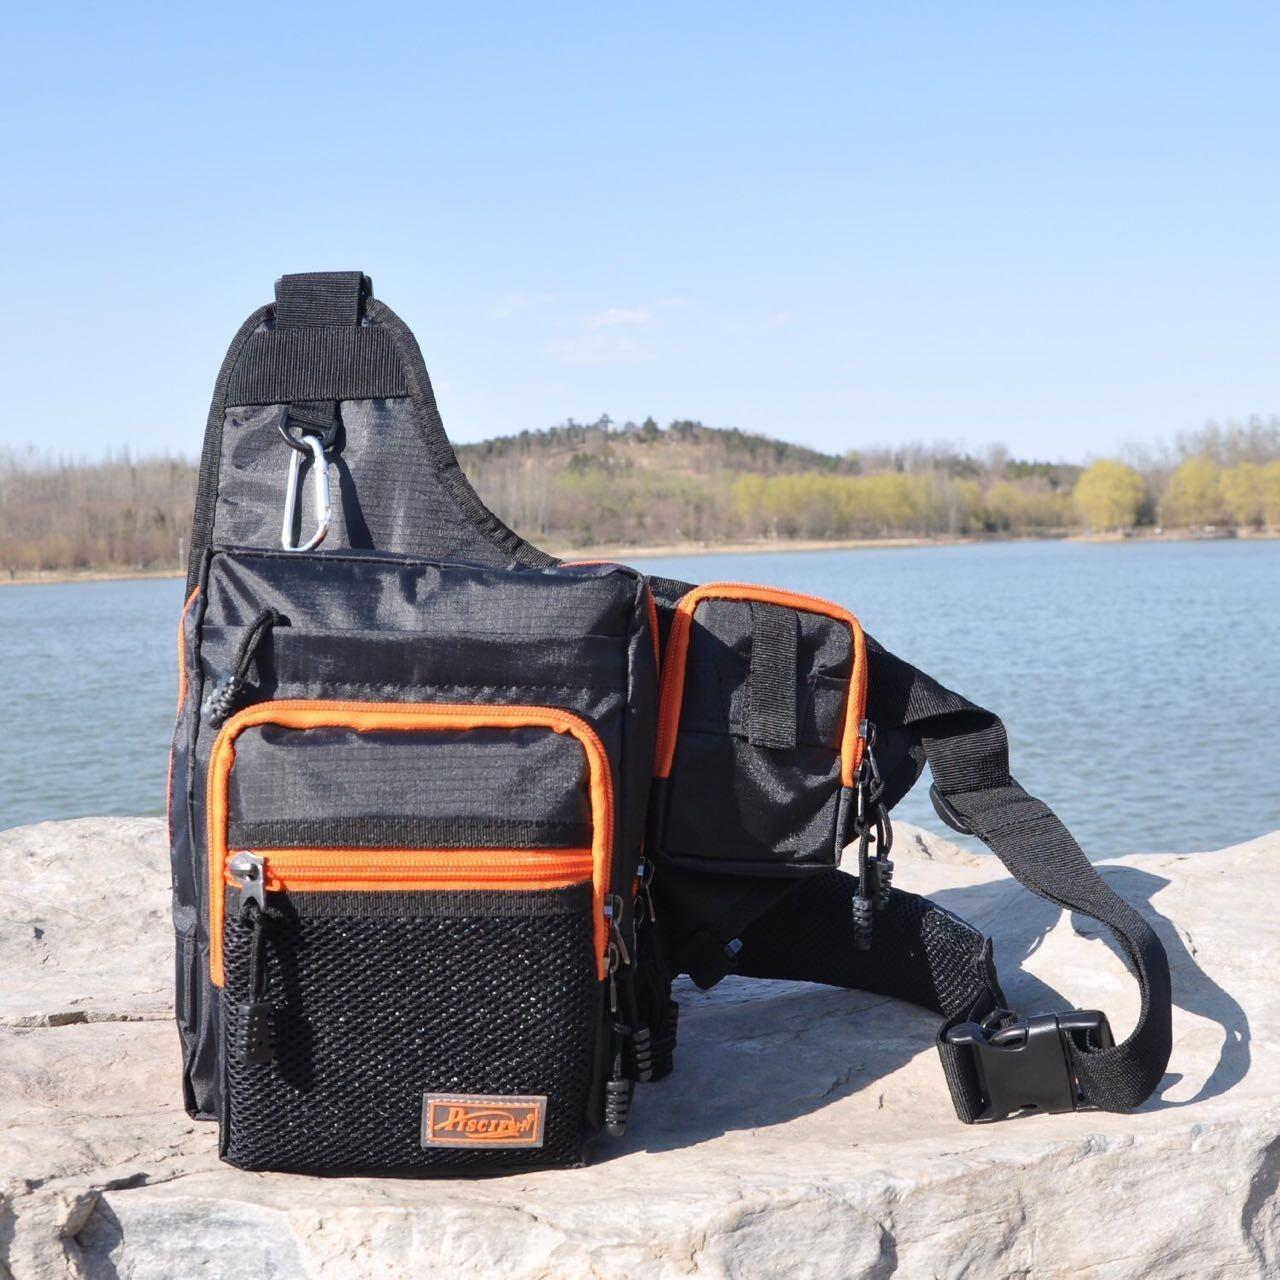 China 2017 fashion fishing bag with much function water-resistant bag AZO free harmless bag manufacturer on sale